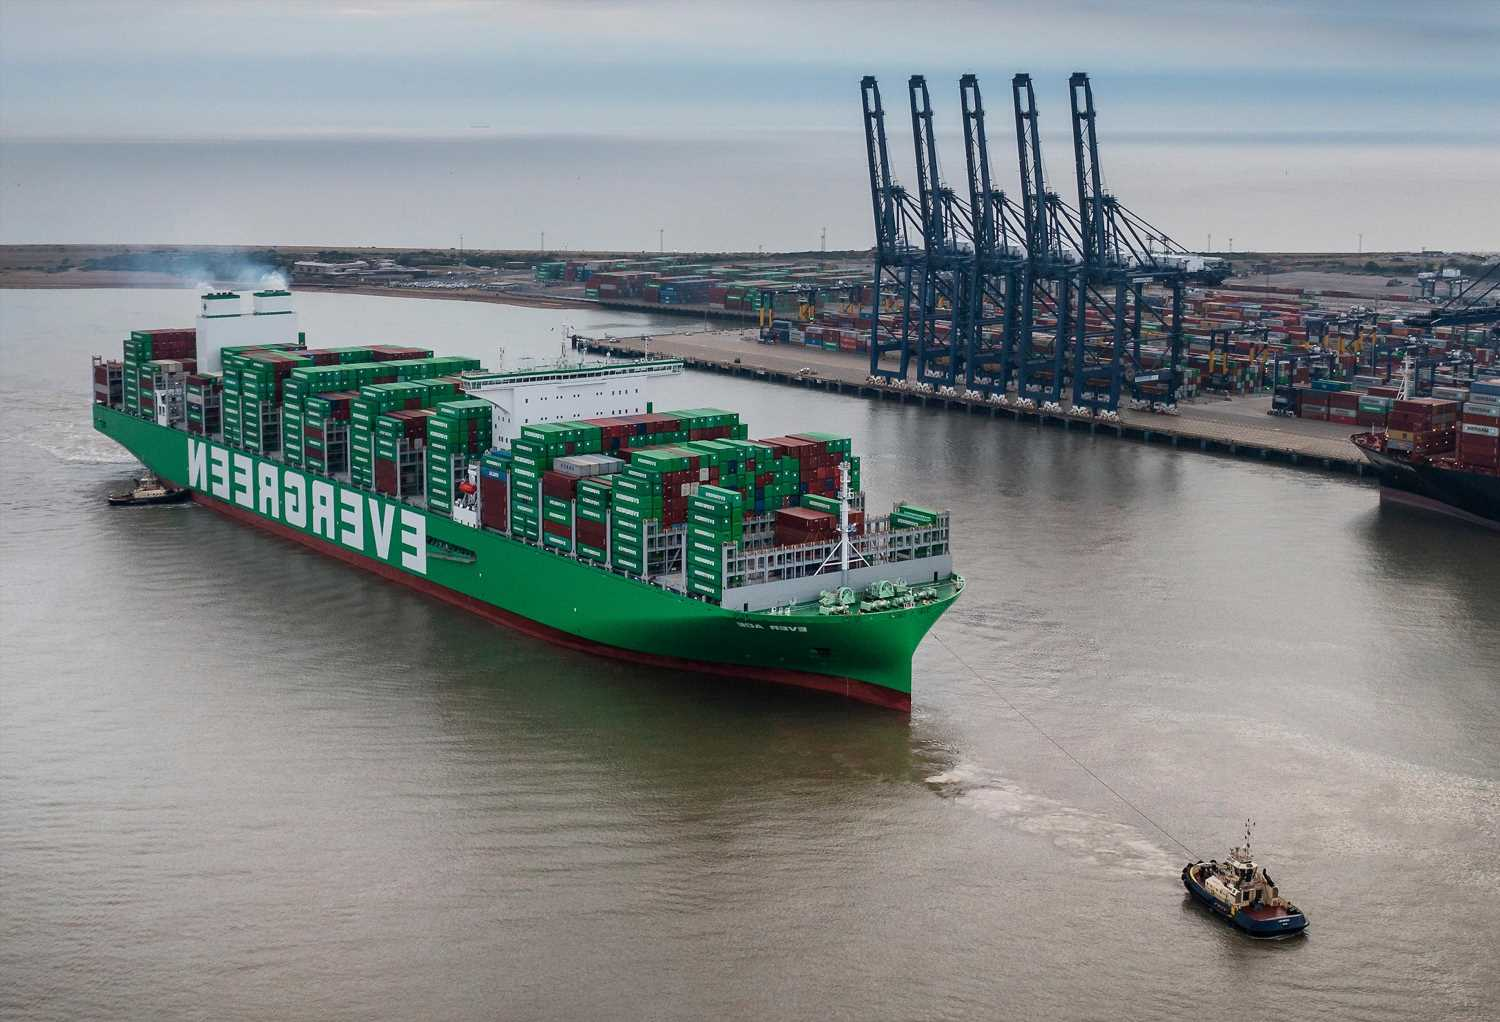 World's largest cargo ship Ever Ace arrives in the UK packed with Christmas gifts